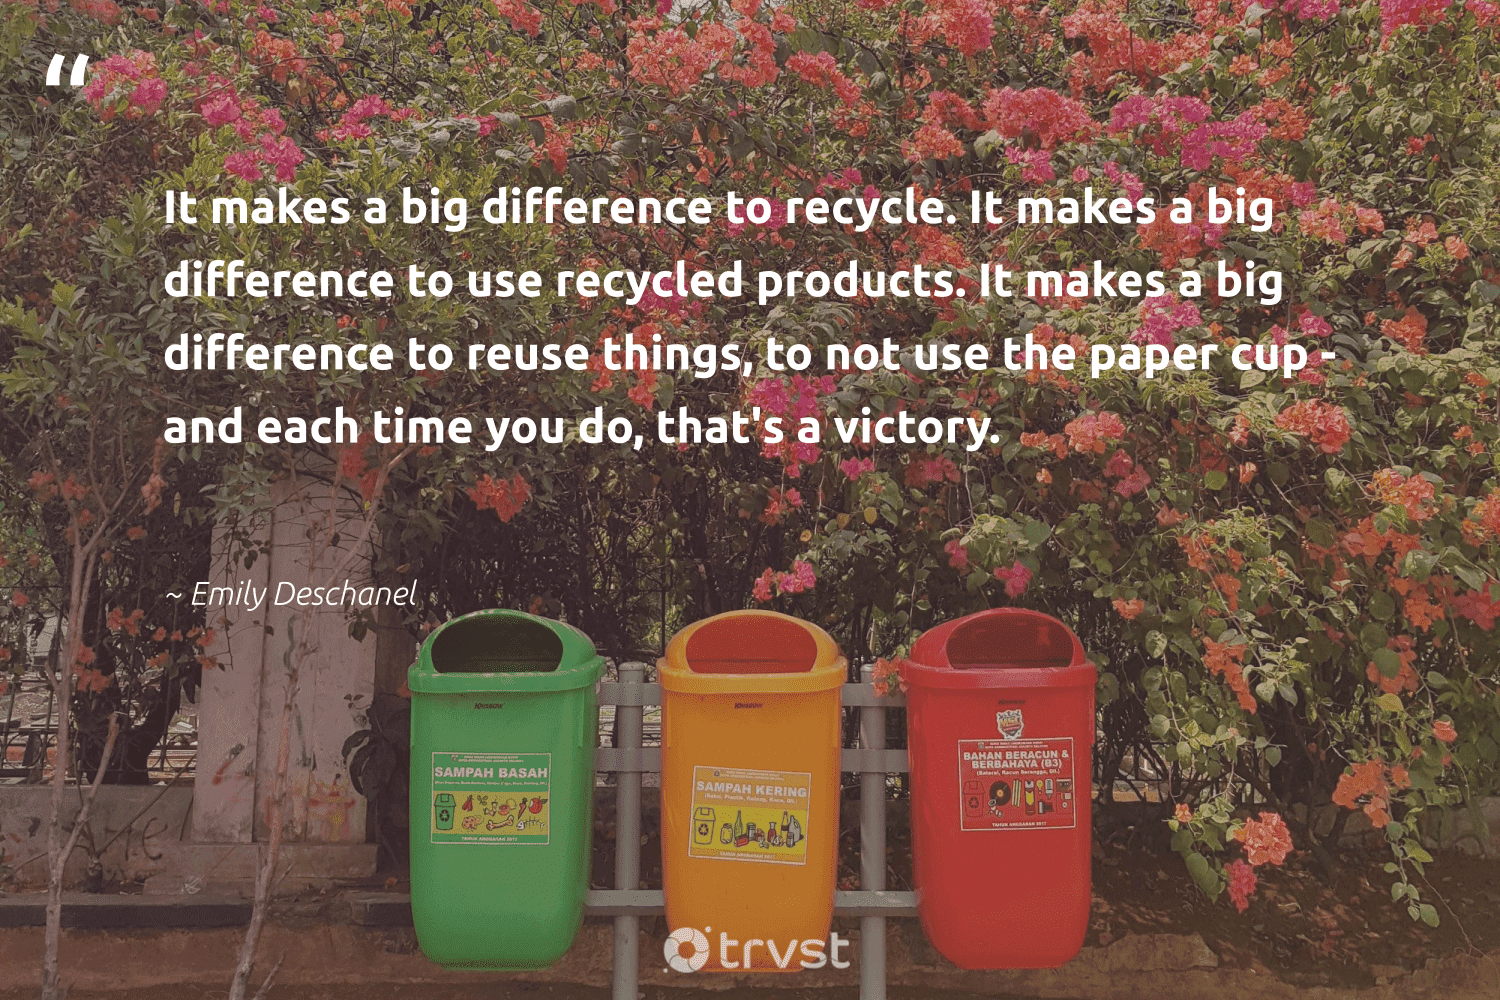 """""""It makes a big difference to recycle. It makes a big difference to use recycled products. It makes a big difference to reuse things, to not use the paper cup - and each time you do, that's a victory.""""  - Emily Deschanel #trvst #quotes #recycling #recycle #recycled #reuse #reducereuserecycle #reduce #changetheworld #greenliving #impact #repair"""